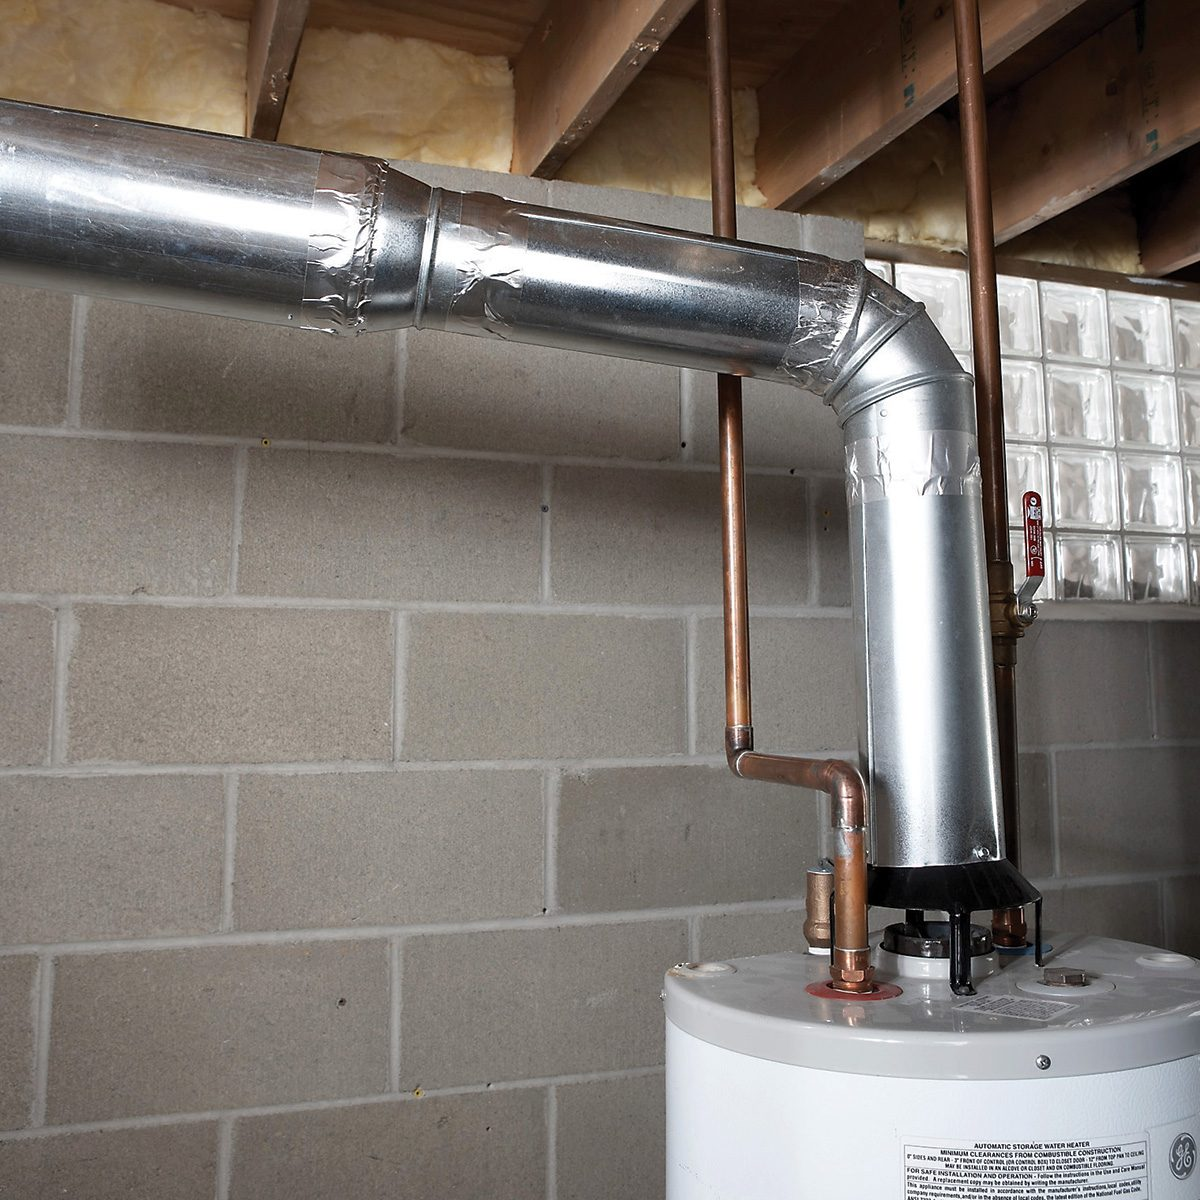 Water heater vent